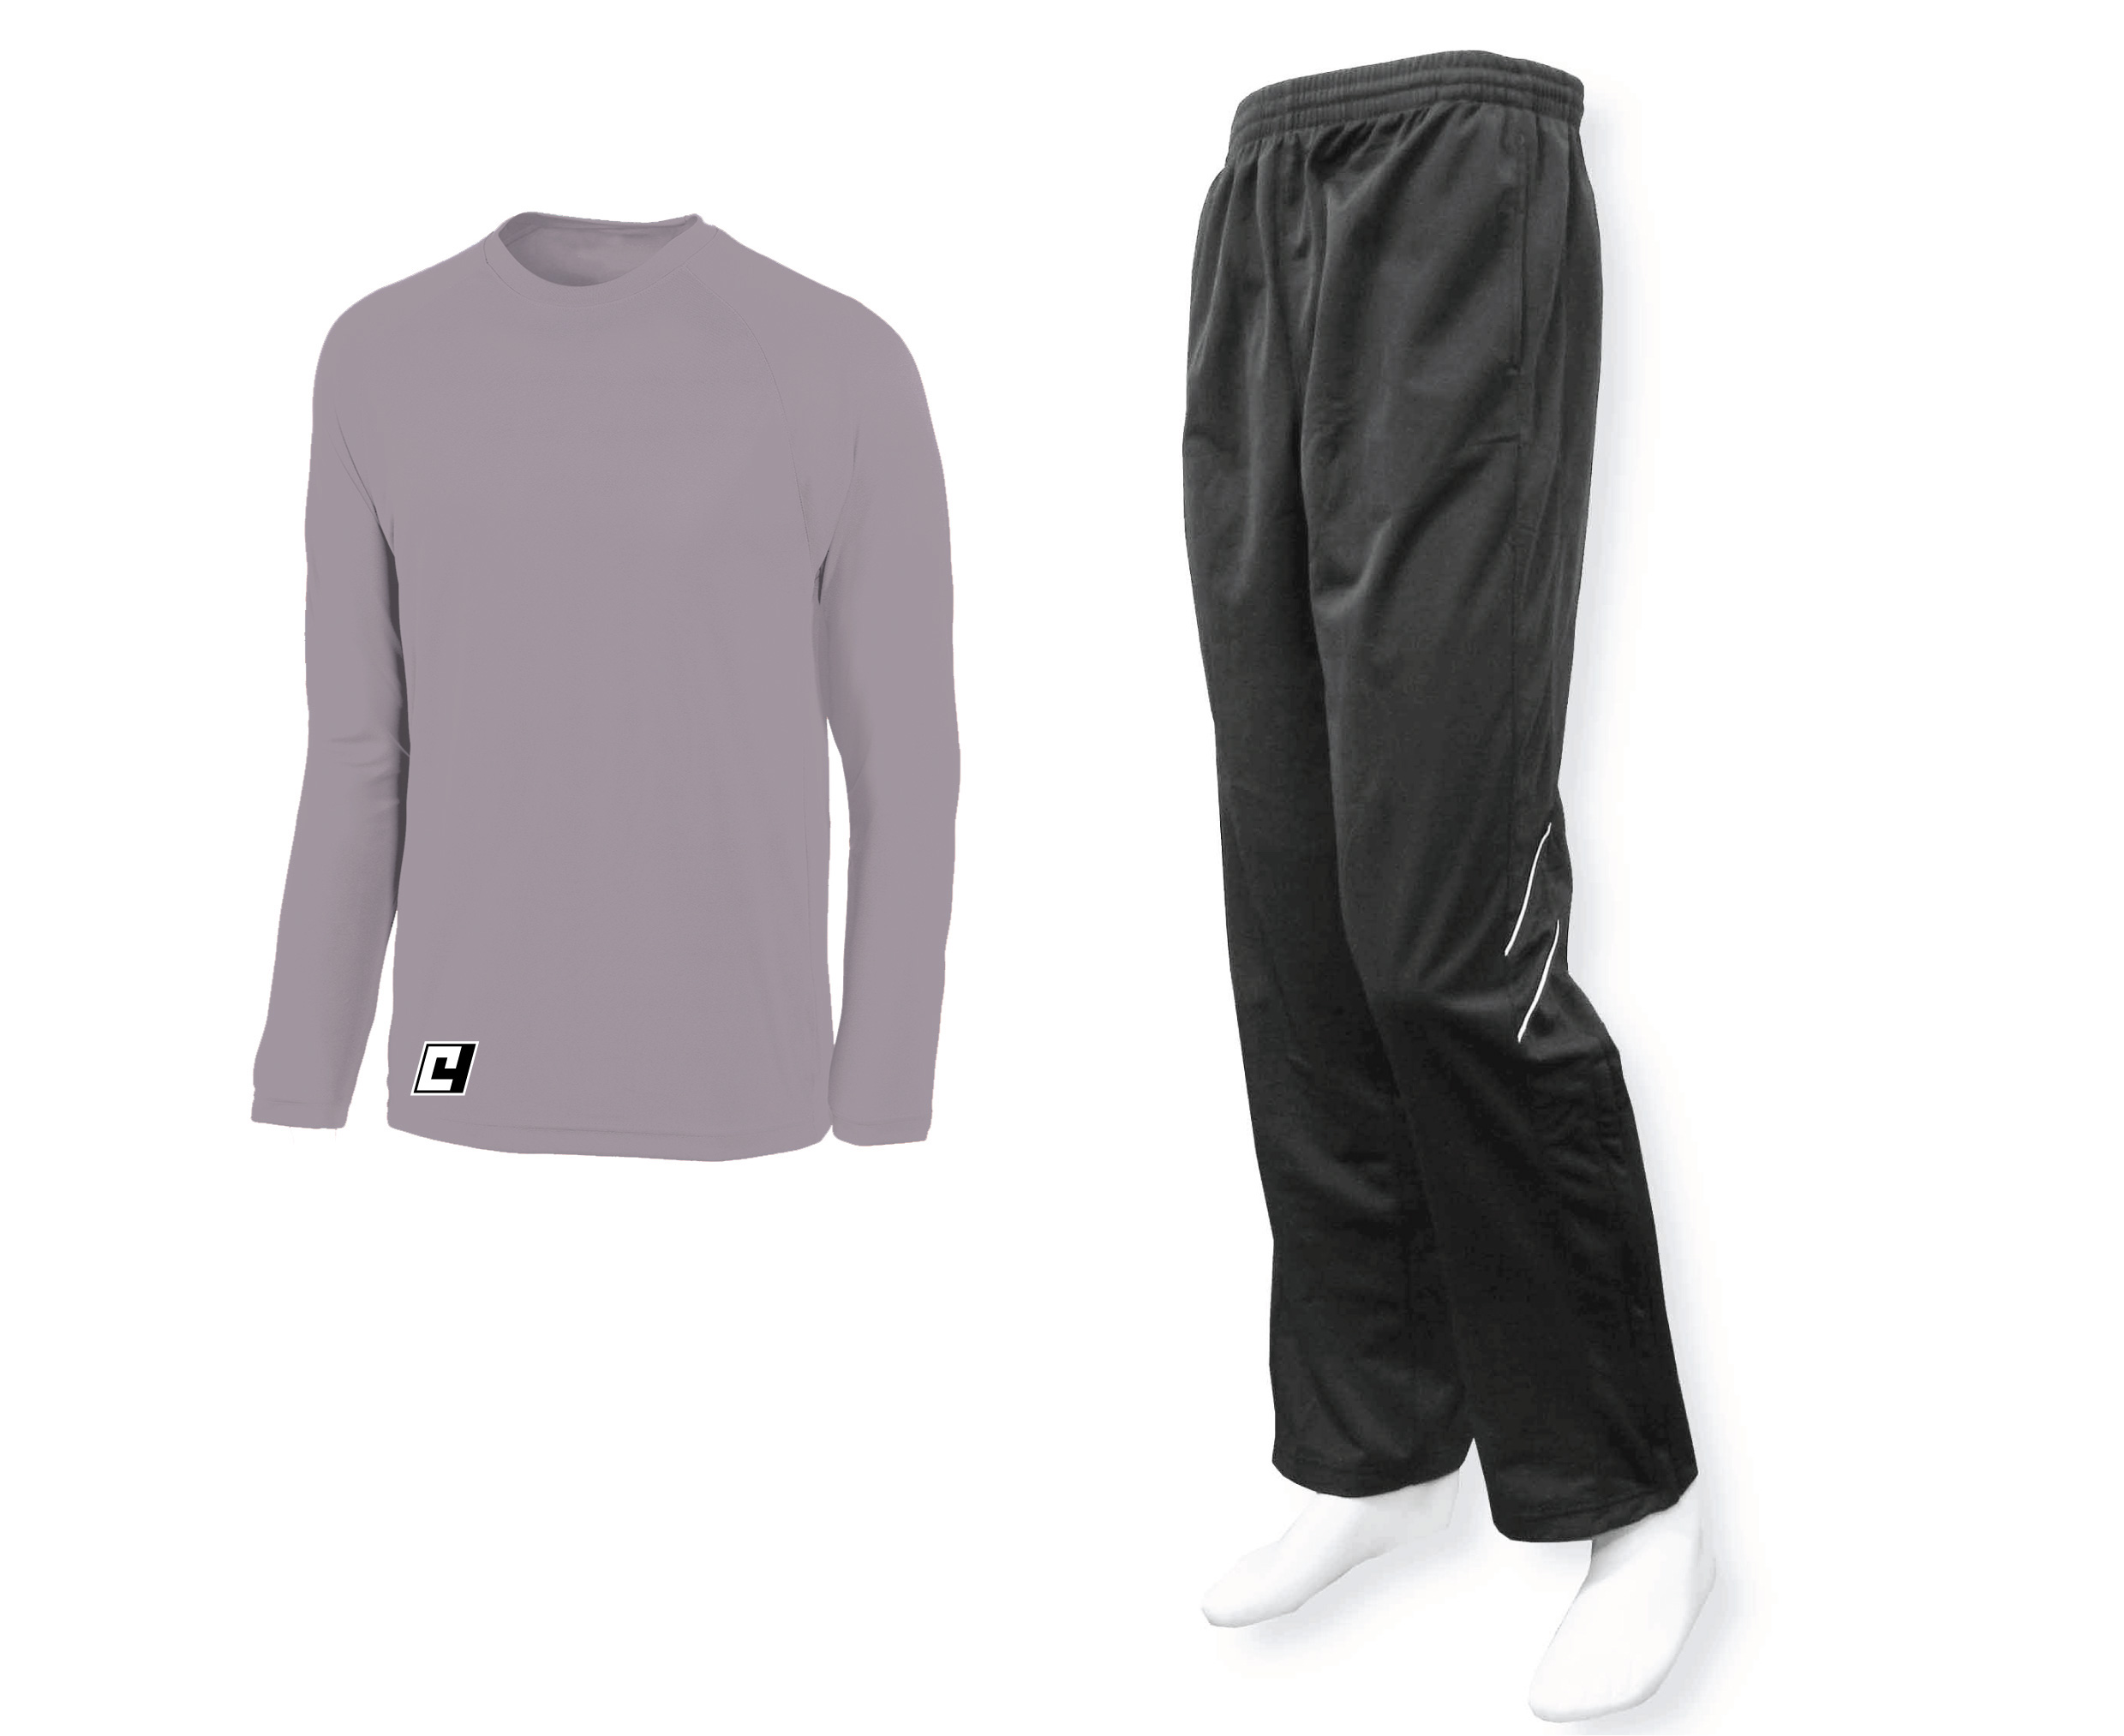 Silver top with black track pants by Code Four Atheltics